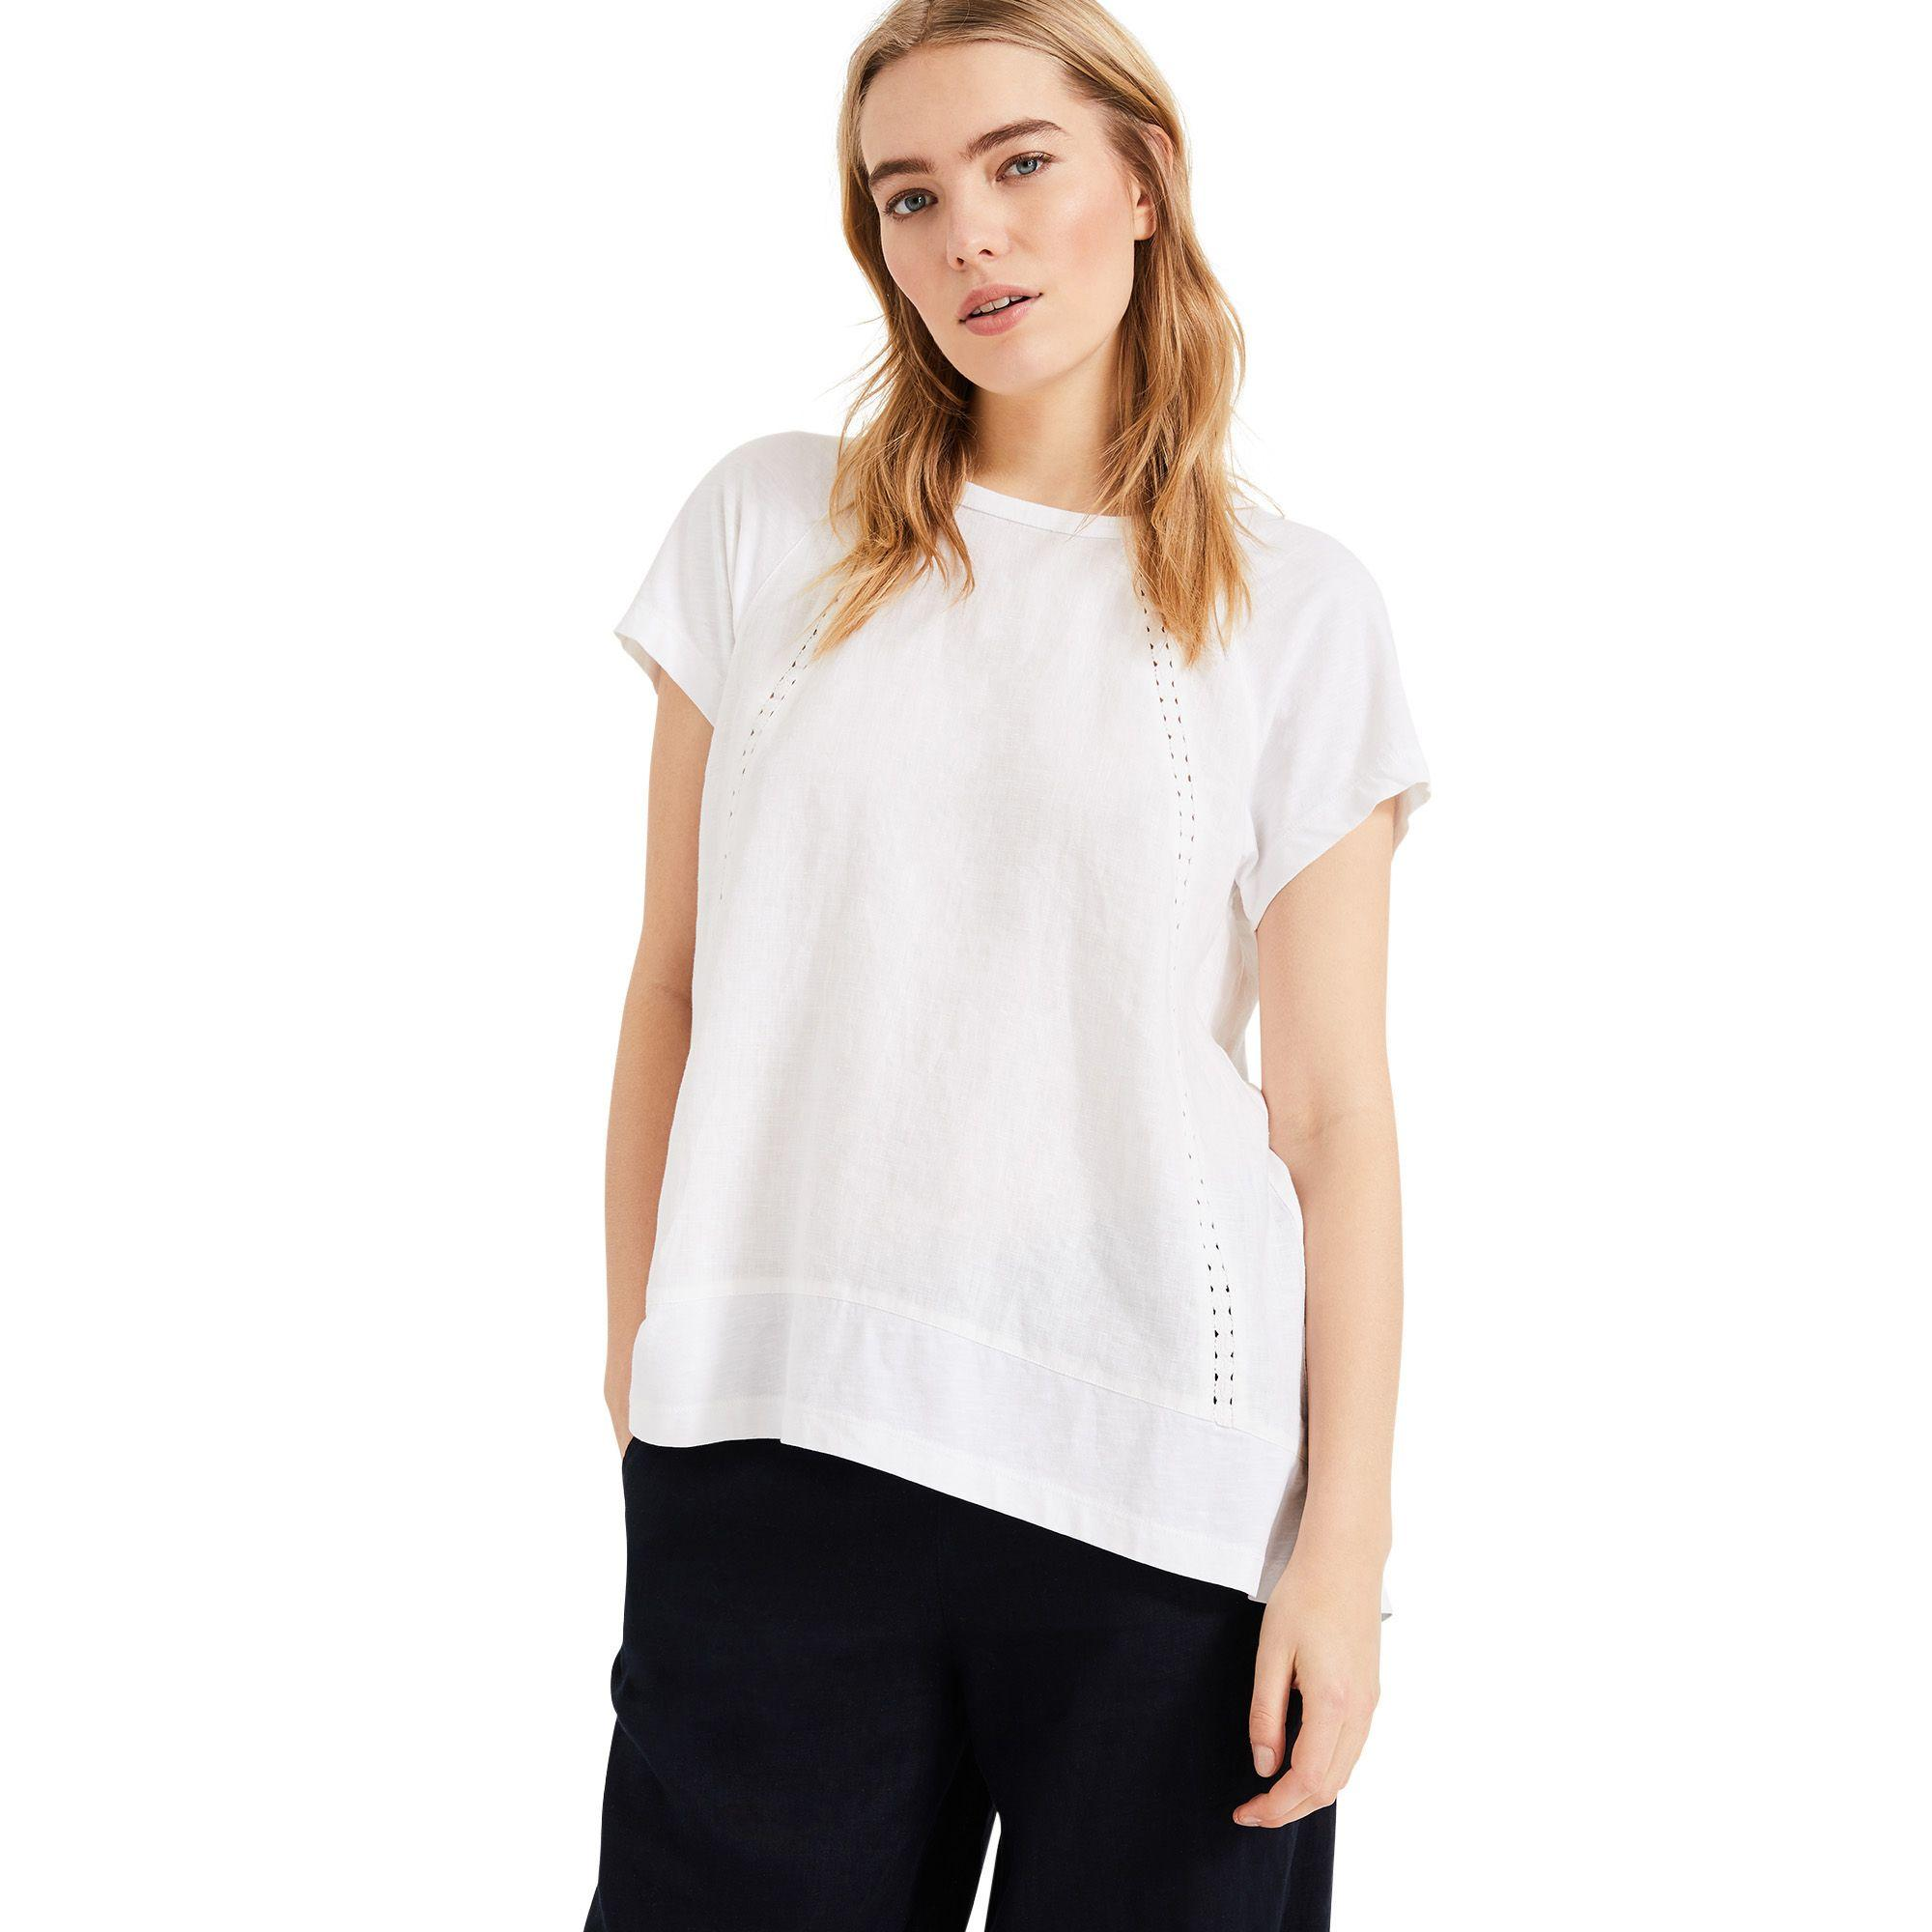 00ec9618f763b6 Phase Eight Melody Linen Blouse in White - Lyst